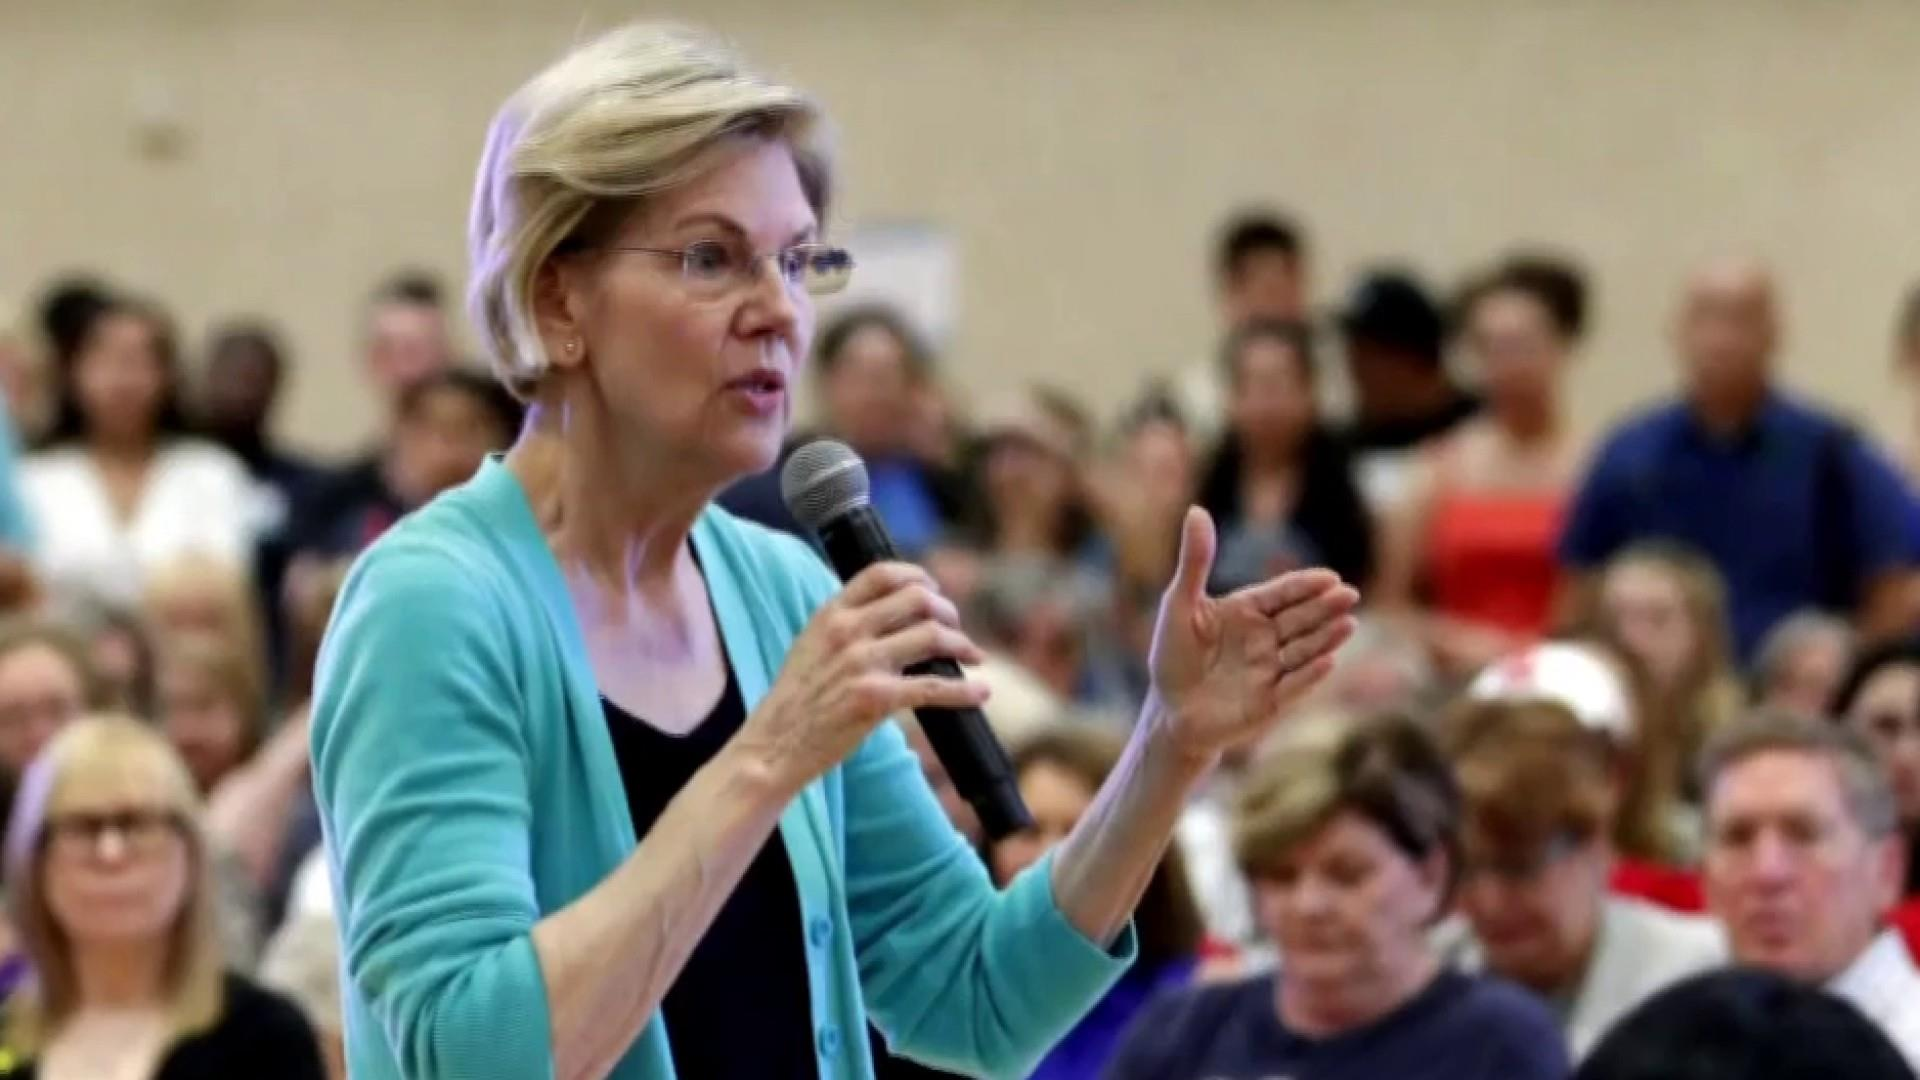 Elizabeth Warren surges among progressives in new poll